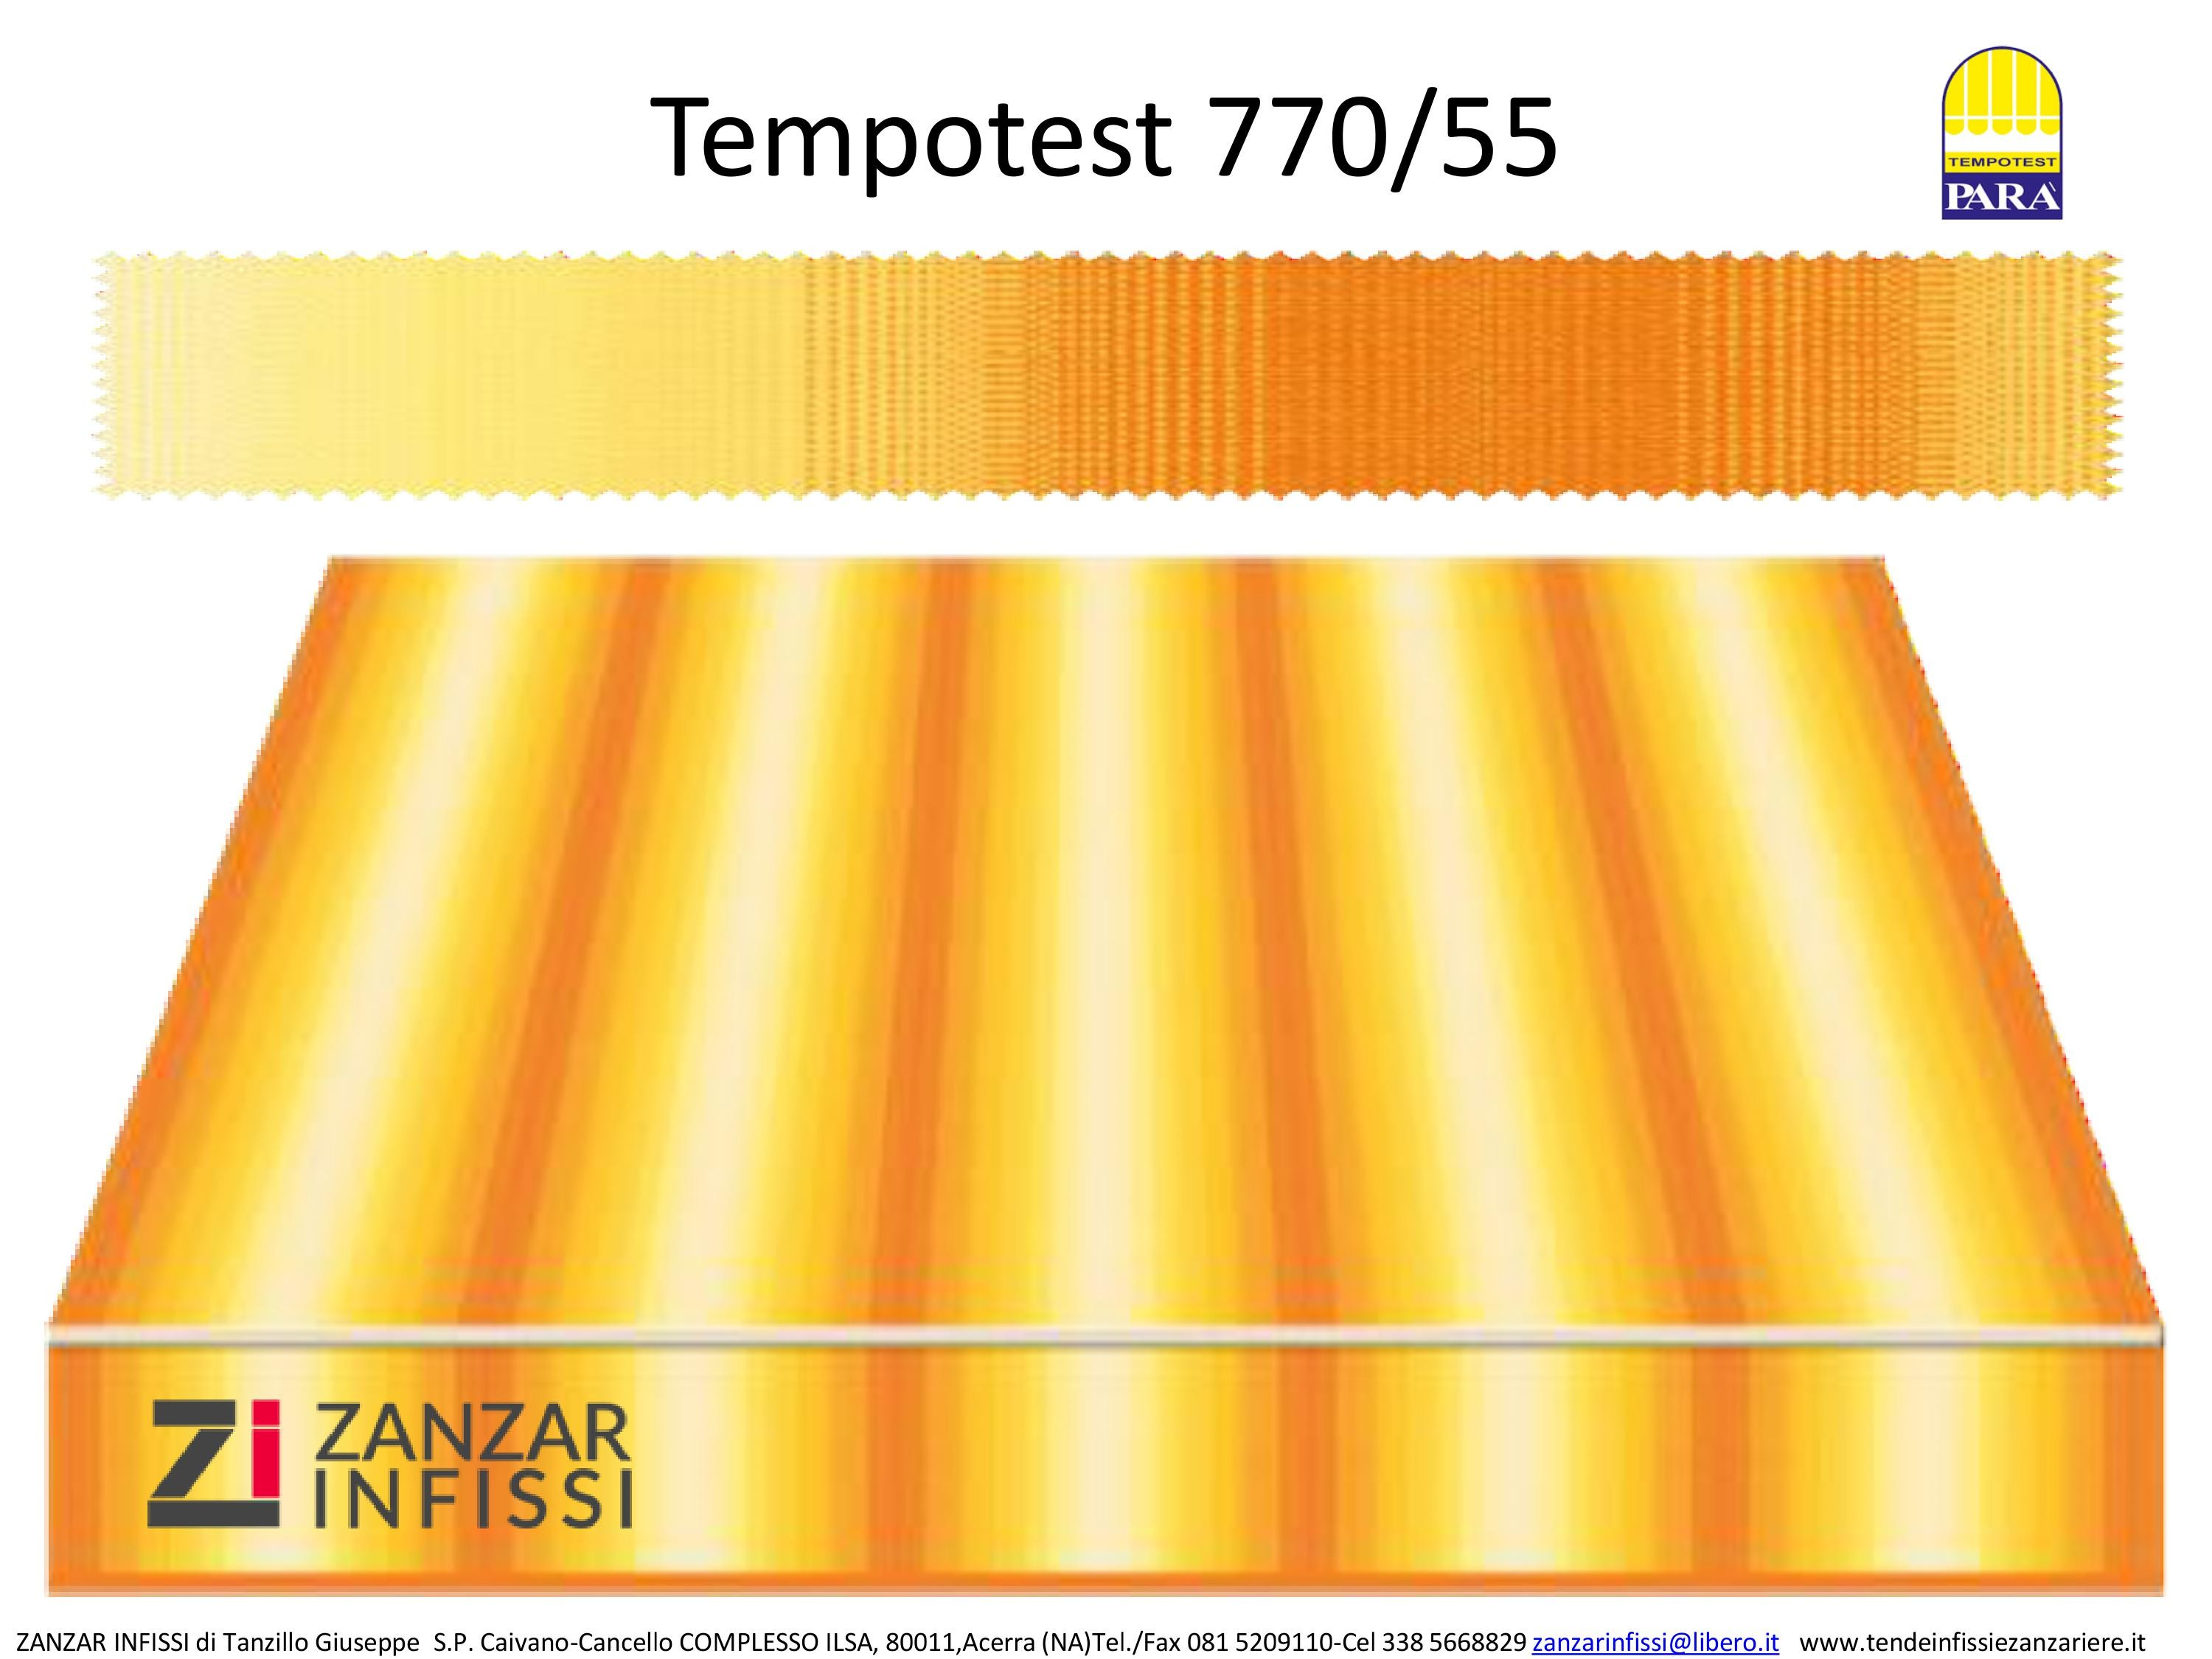 Tempotest 770/55